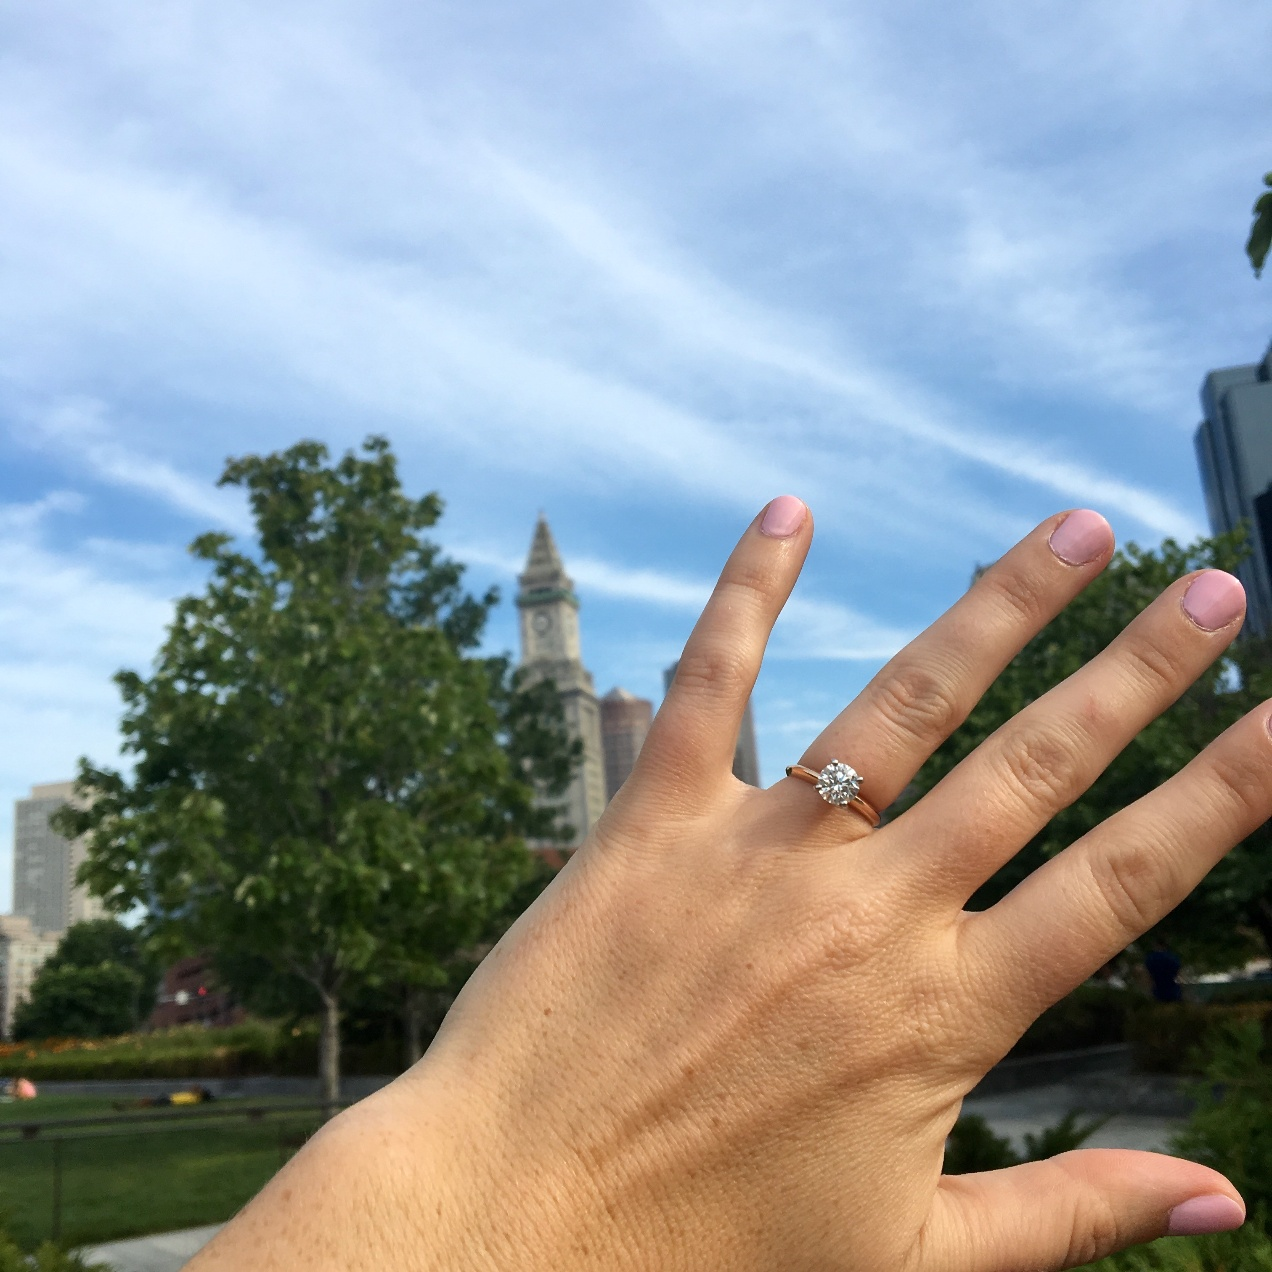 Jessica & Mike Proposal Story